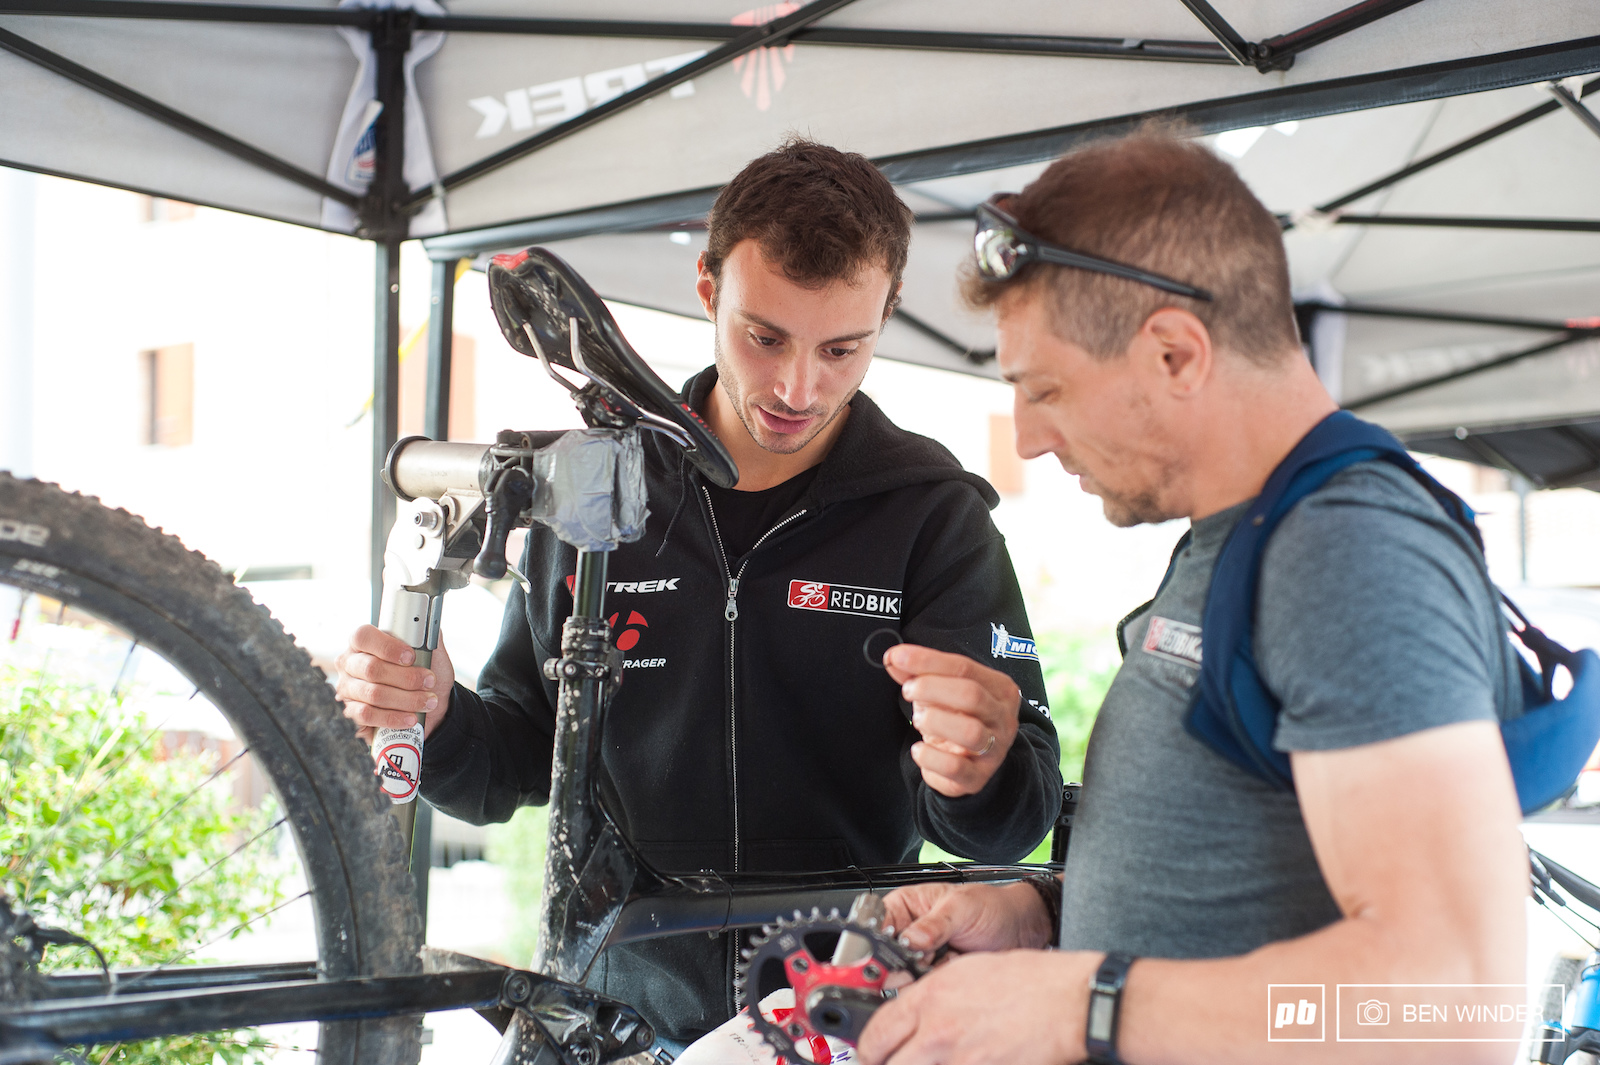 Vittorio Gambirasio appears to be very hands on when it comes to his bike setup.